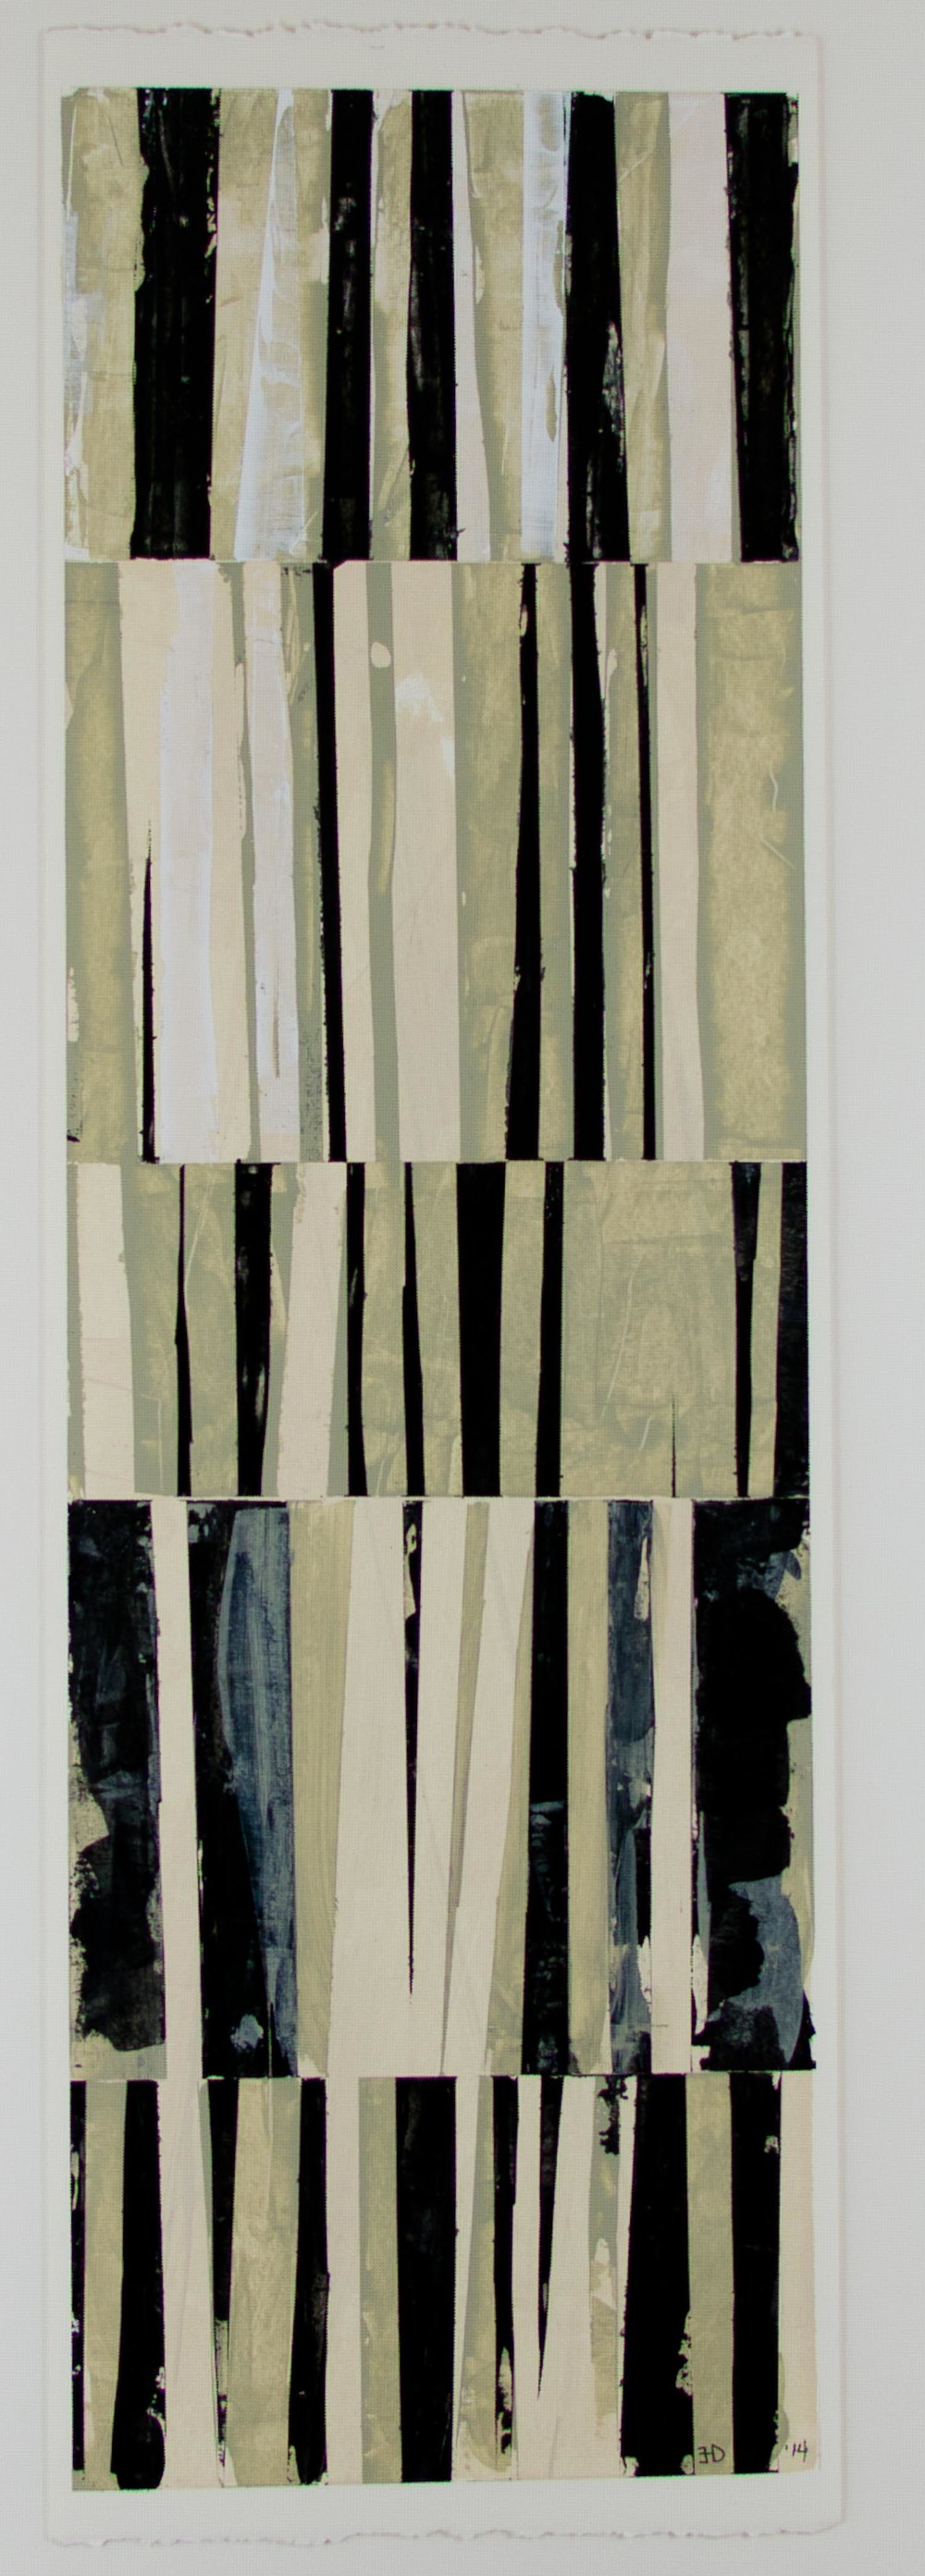 "Between the Lines #3   acrylic on paper, matted and framed, 16 3/8"" x 32""  $400"